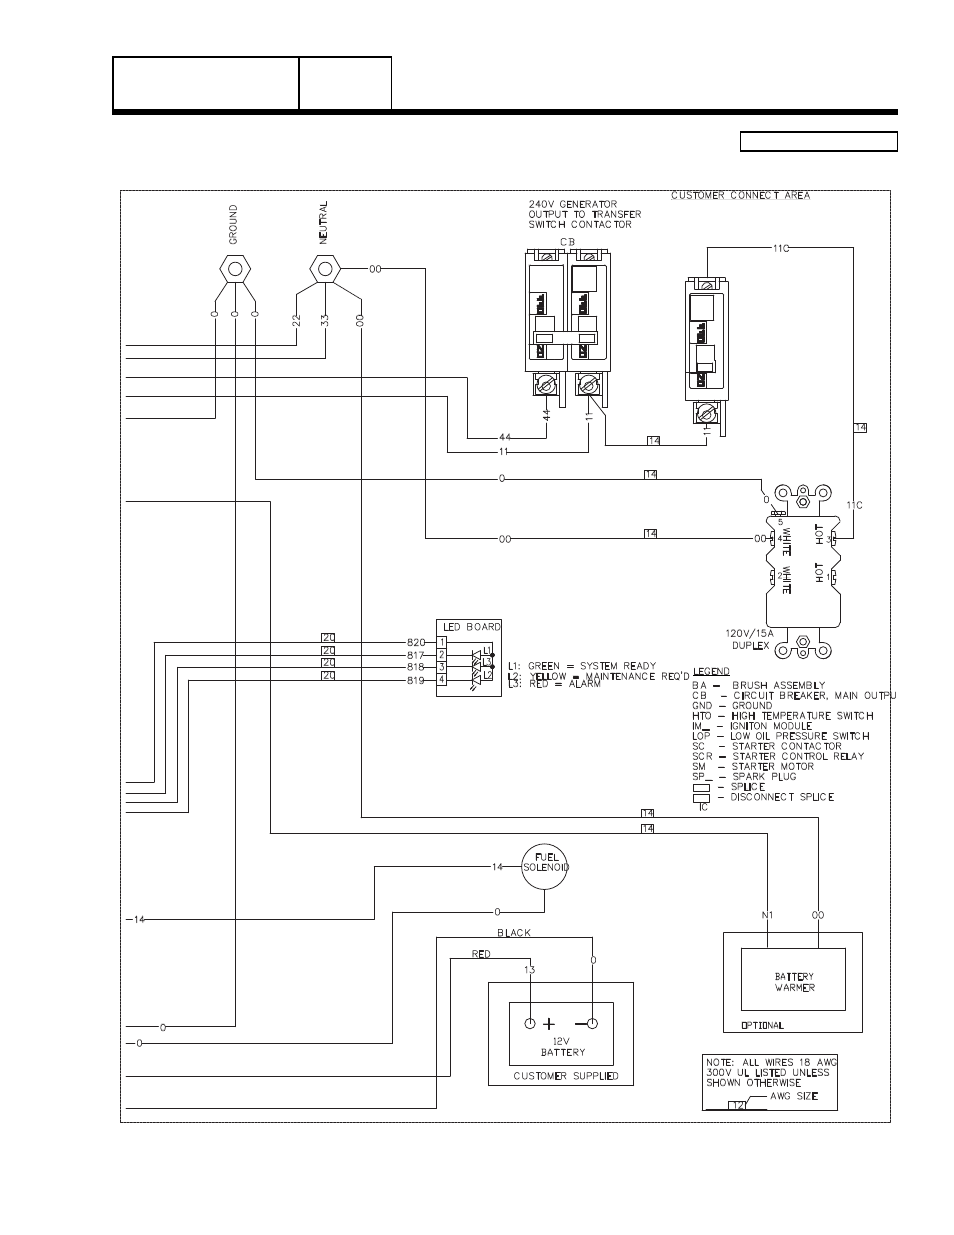 8 Kw Generac Wiring Diagram Harness Schematics Nexus Real U2022 Rh Mcmxliv Co Engine Schematic